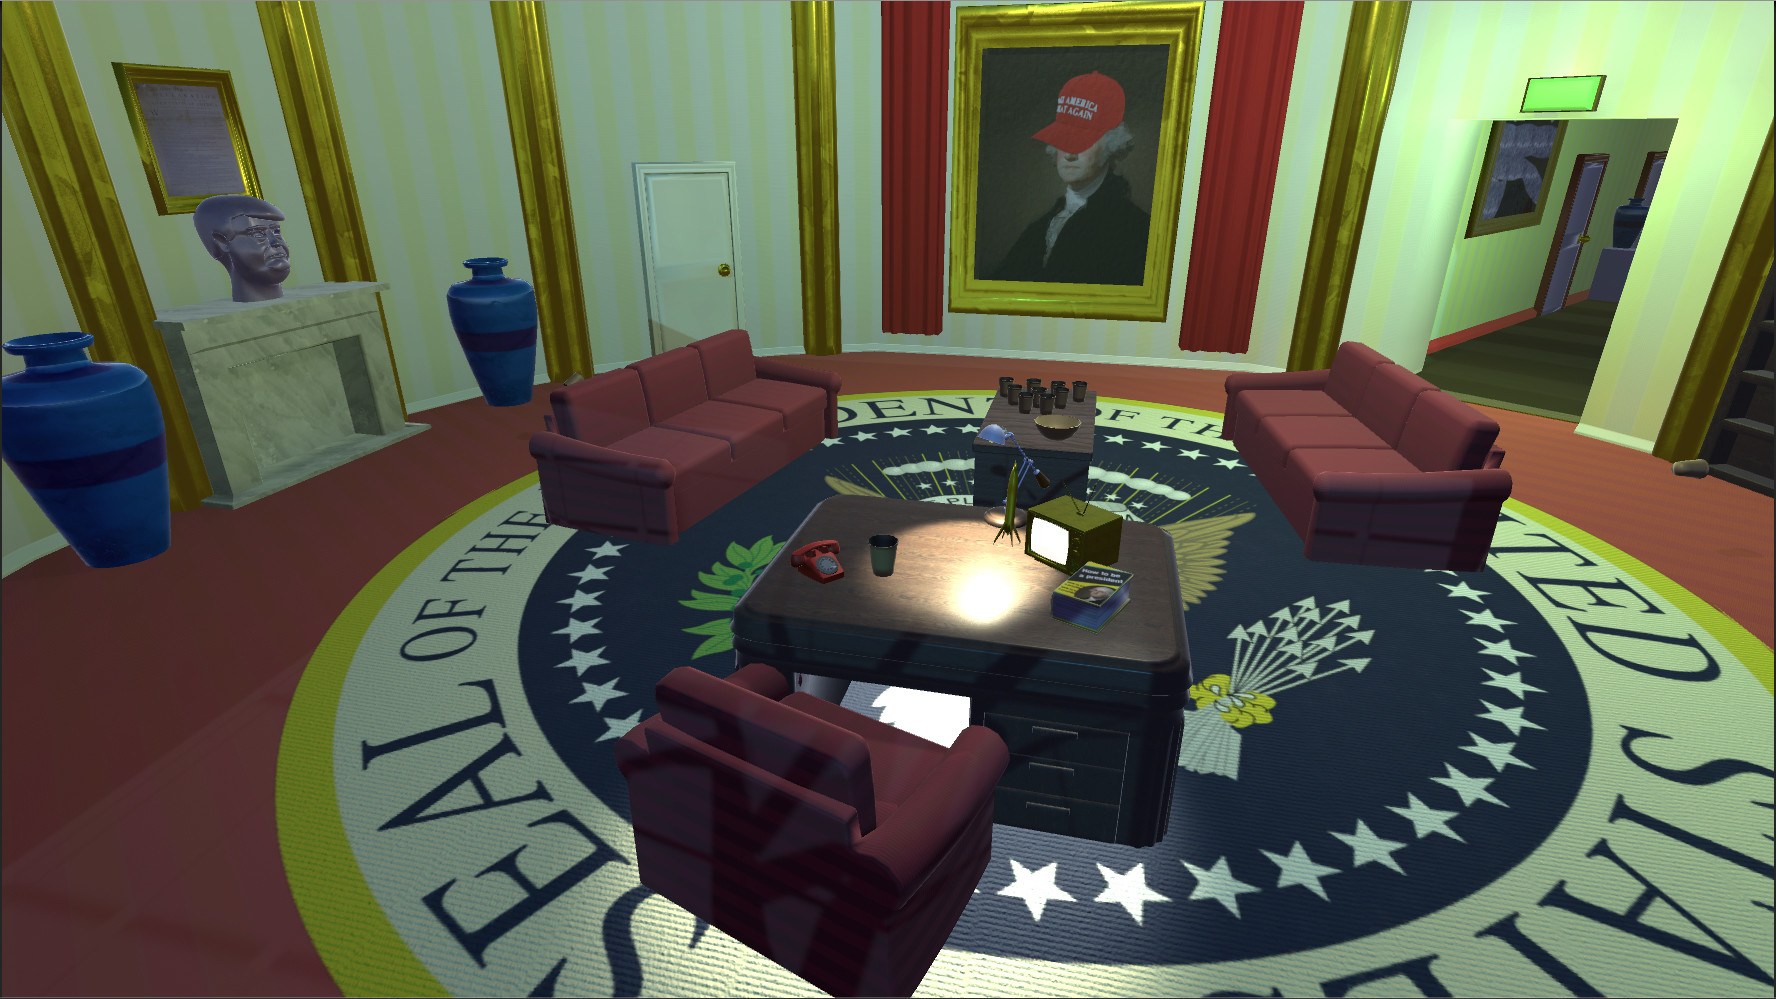 The oval office.